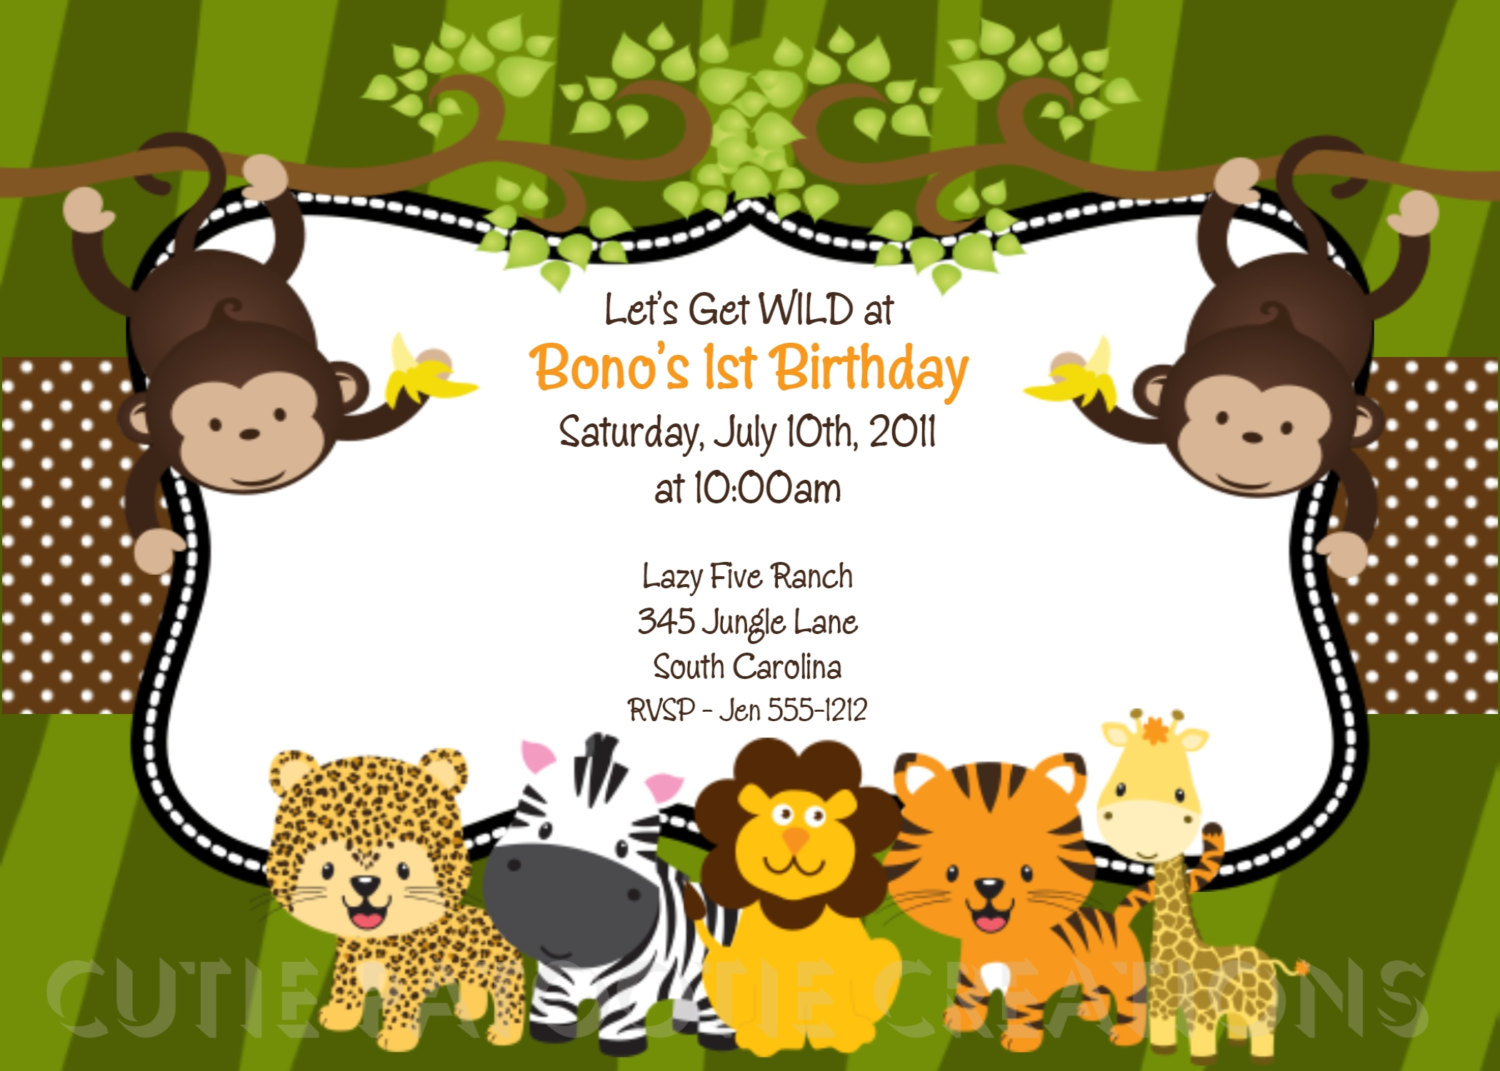 free printable animal birthday invitations ; jungle-animal-birthday-invitation_jungle-animal-birthday-invi-on-jungle-babies-free-printable-invitations-is-it-for-parties